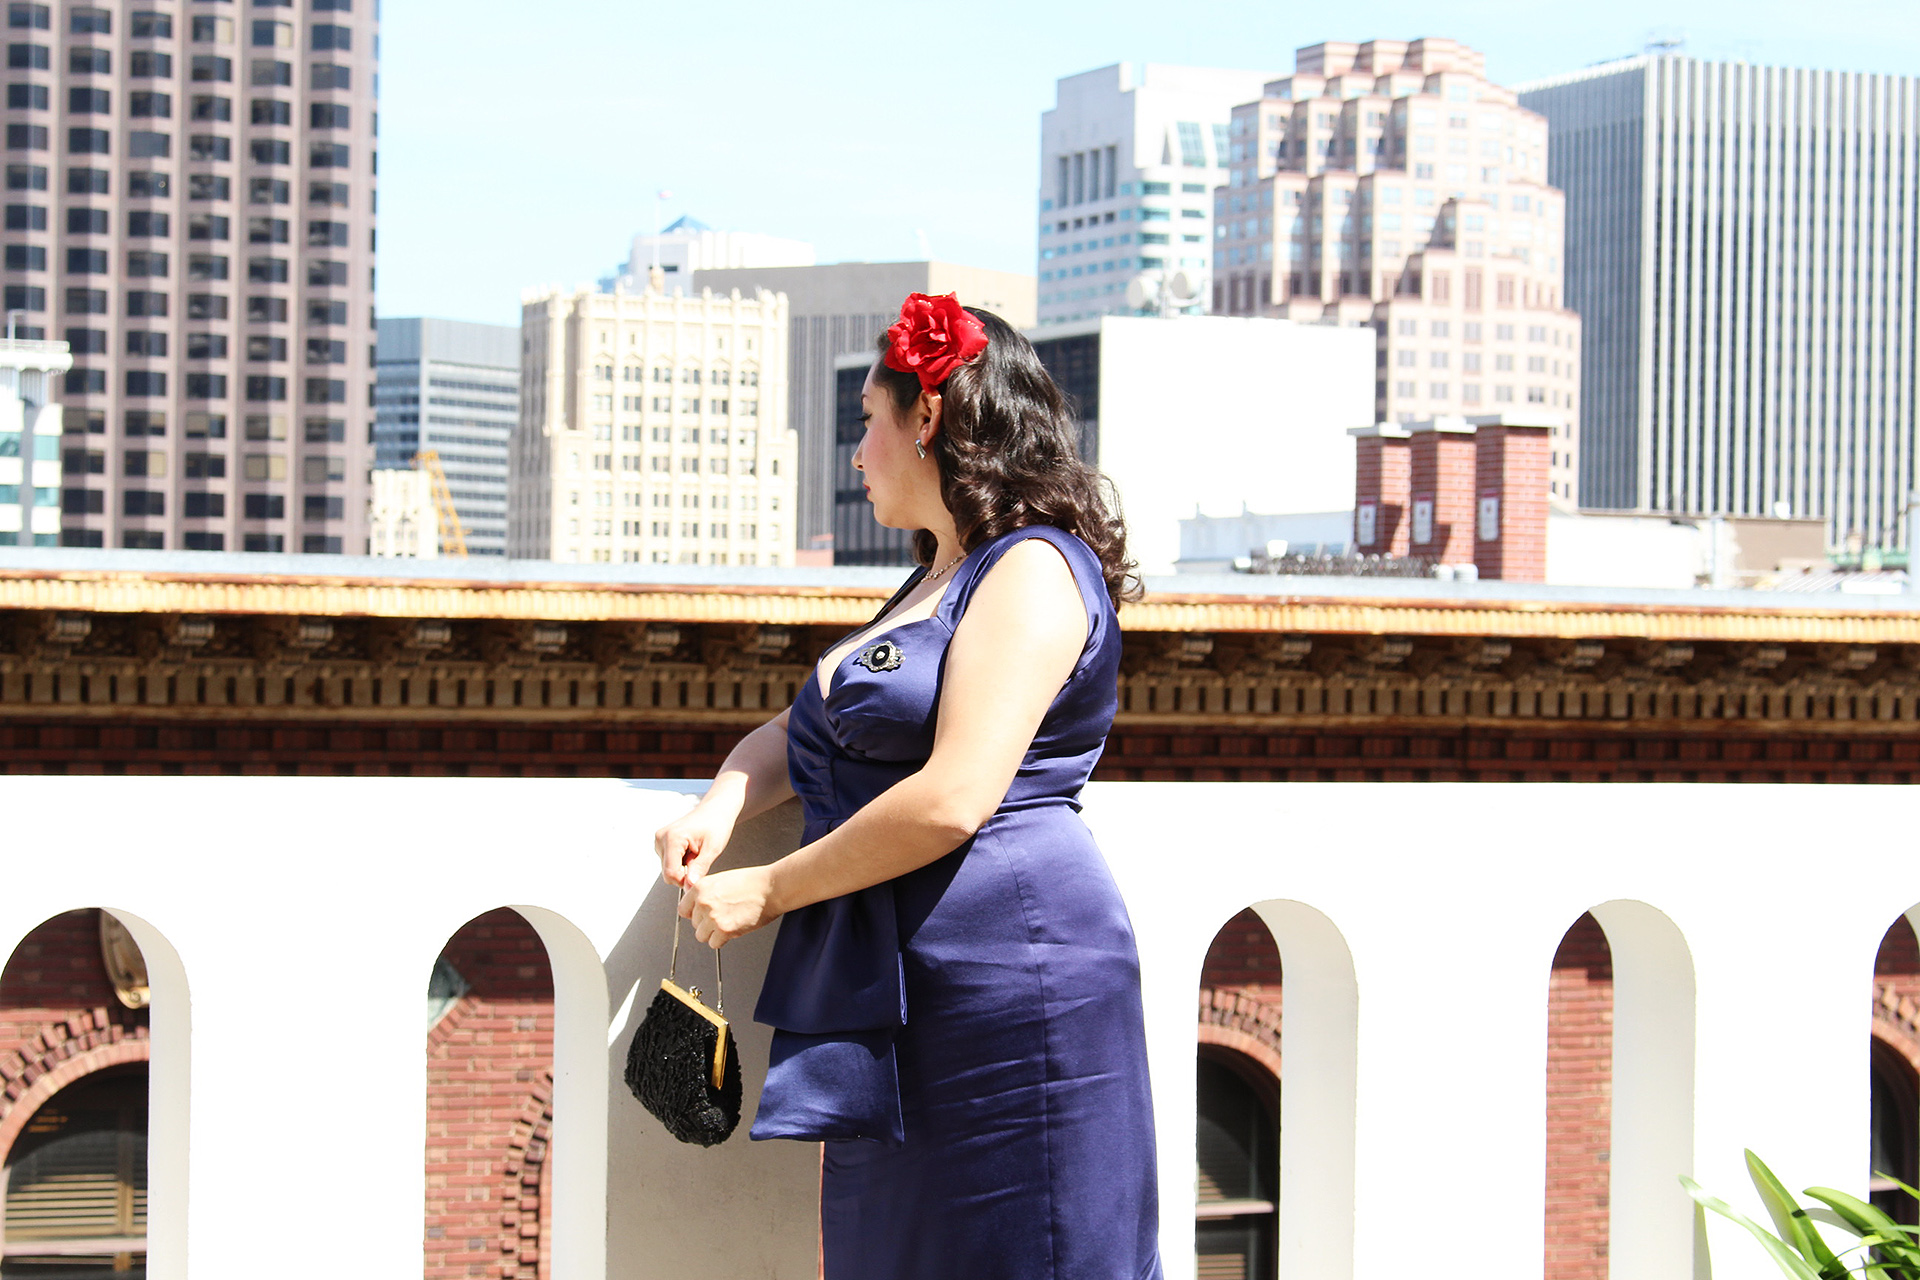 Butterick B5814, Cocktail Dress at the Fairmont Hotel in San Francisco | @vintageontap